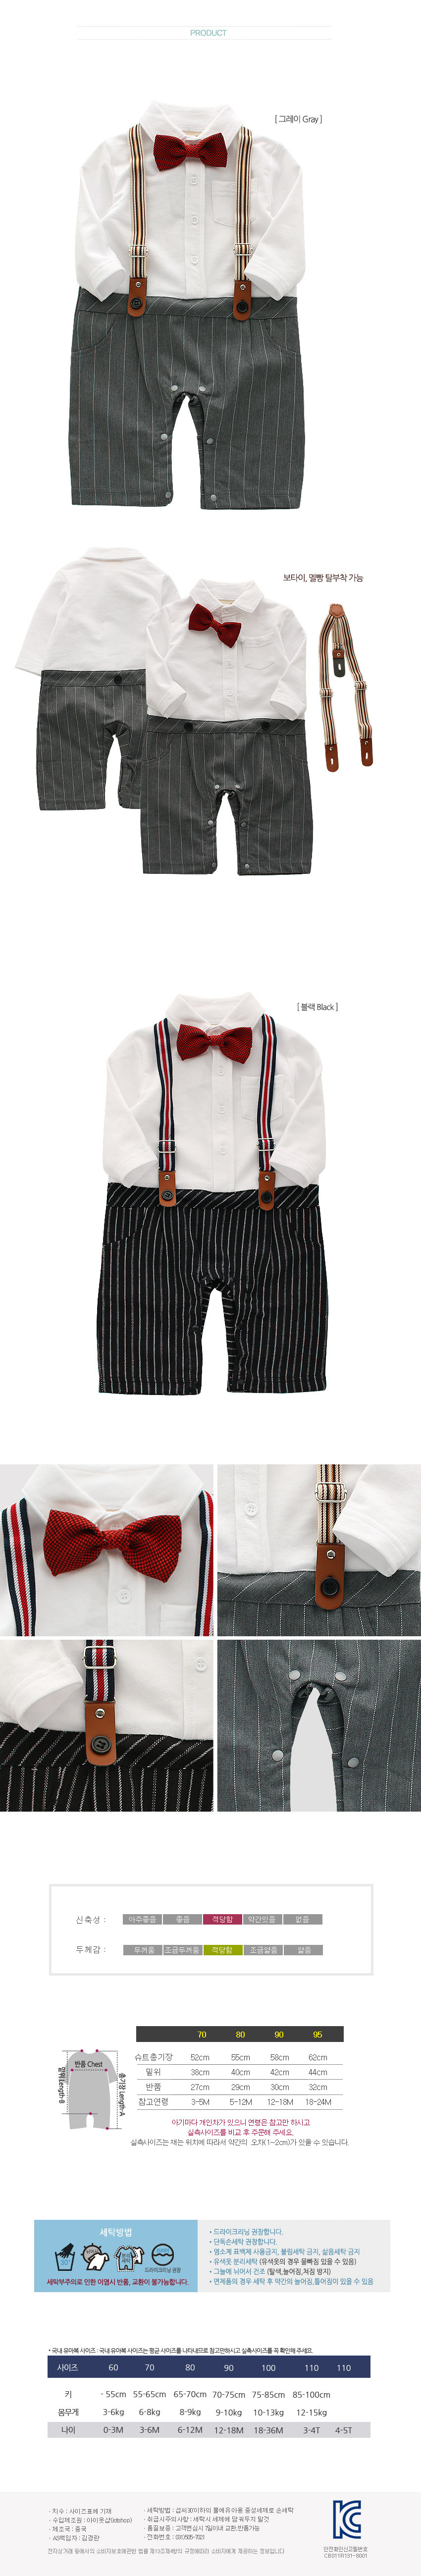 [ BABYMAX ] Infant Suspenders Botai Rompers 1305